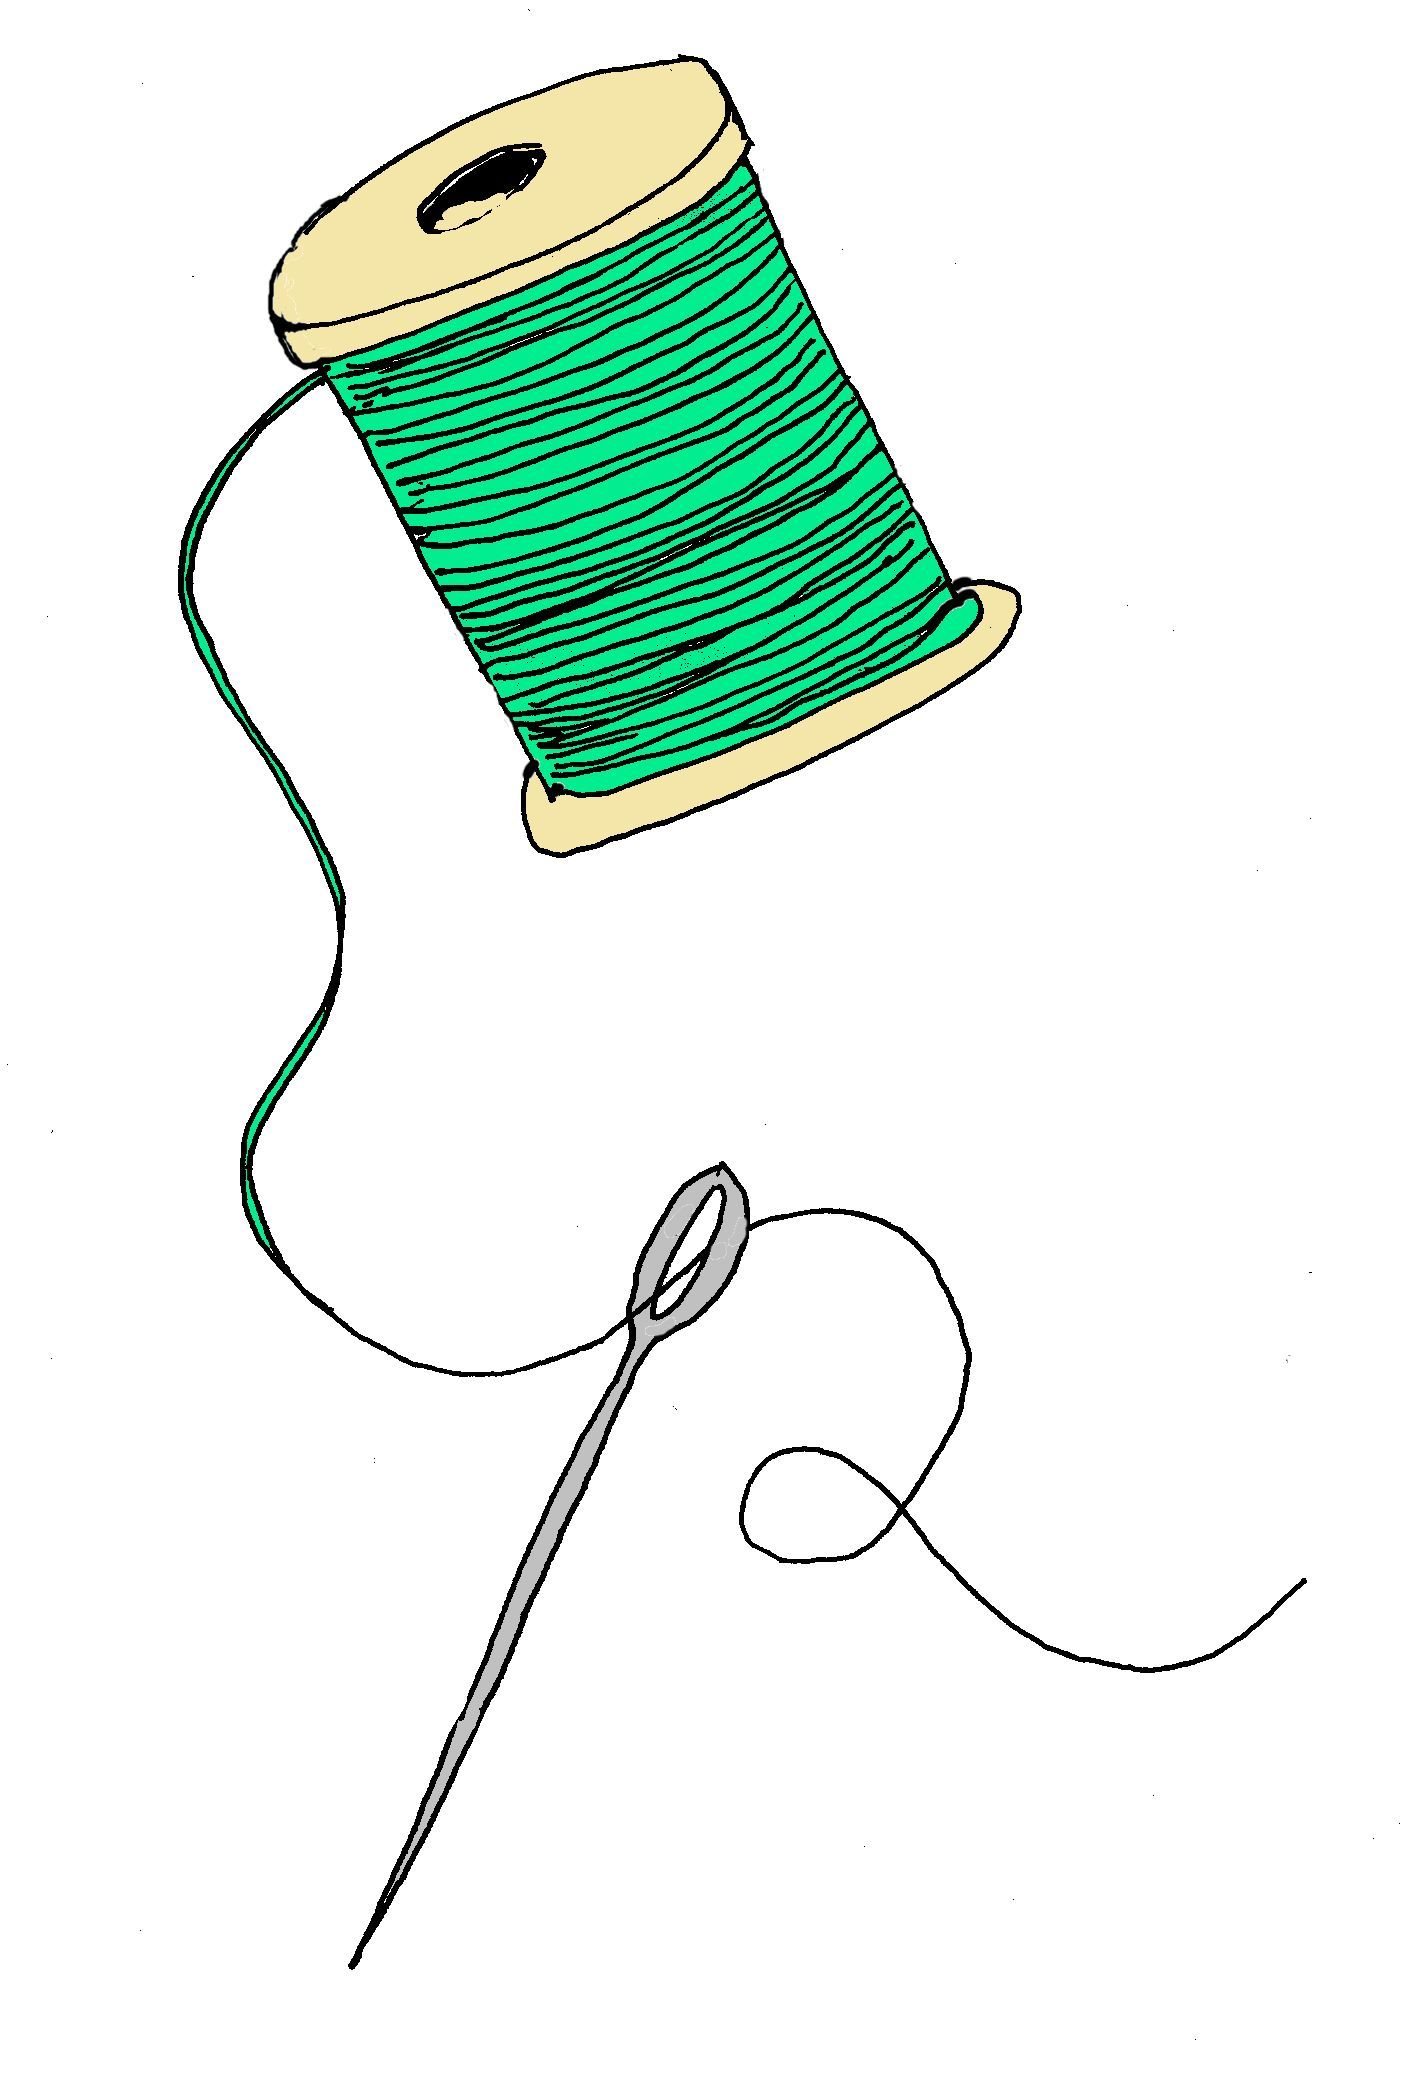 Sewing needle clip art cliparts